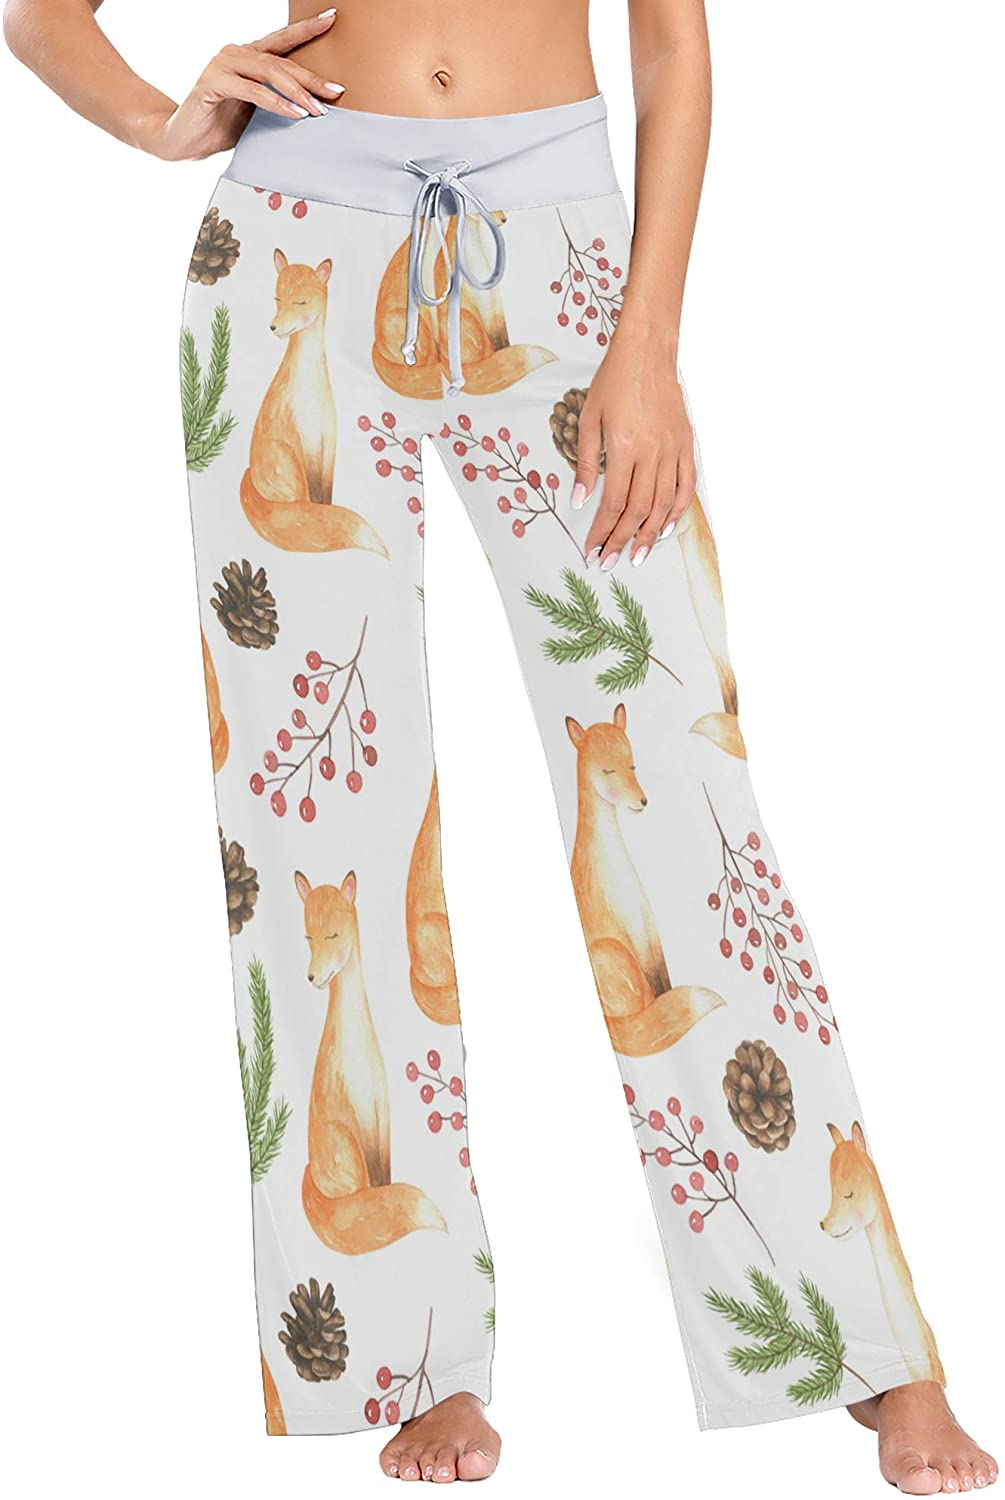 Watercolor Foxes Women Pajama Pants Bottoms Palazzo Yoga Stretchy Wide Leg Trousers